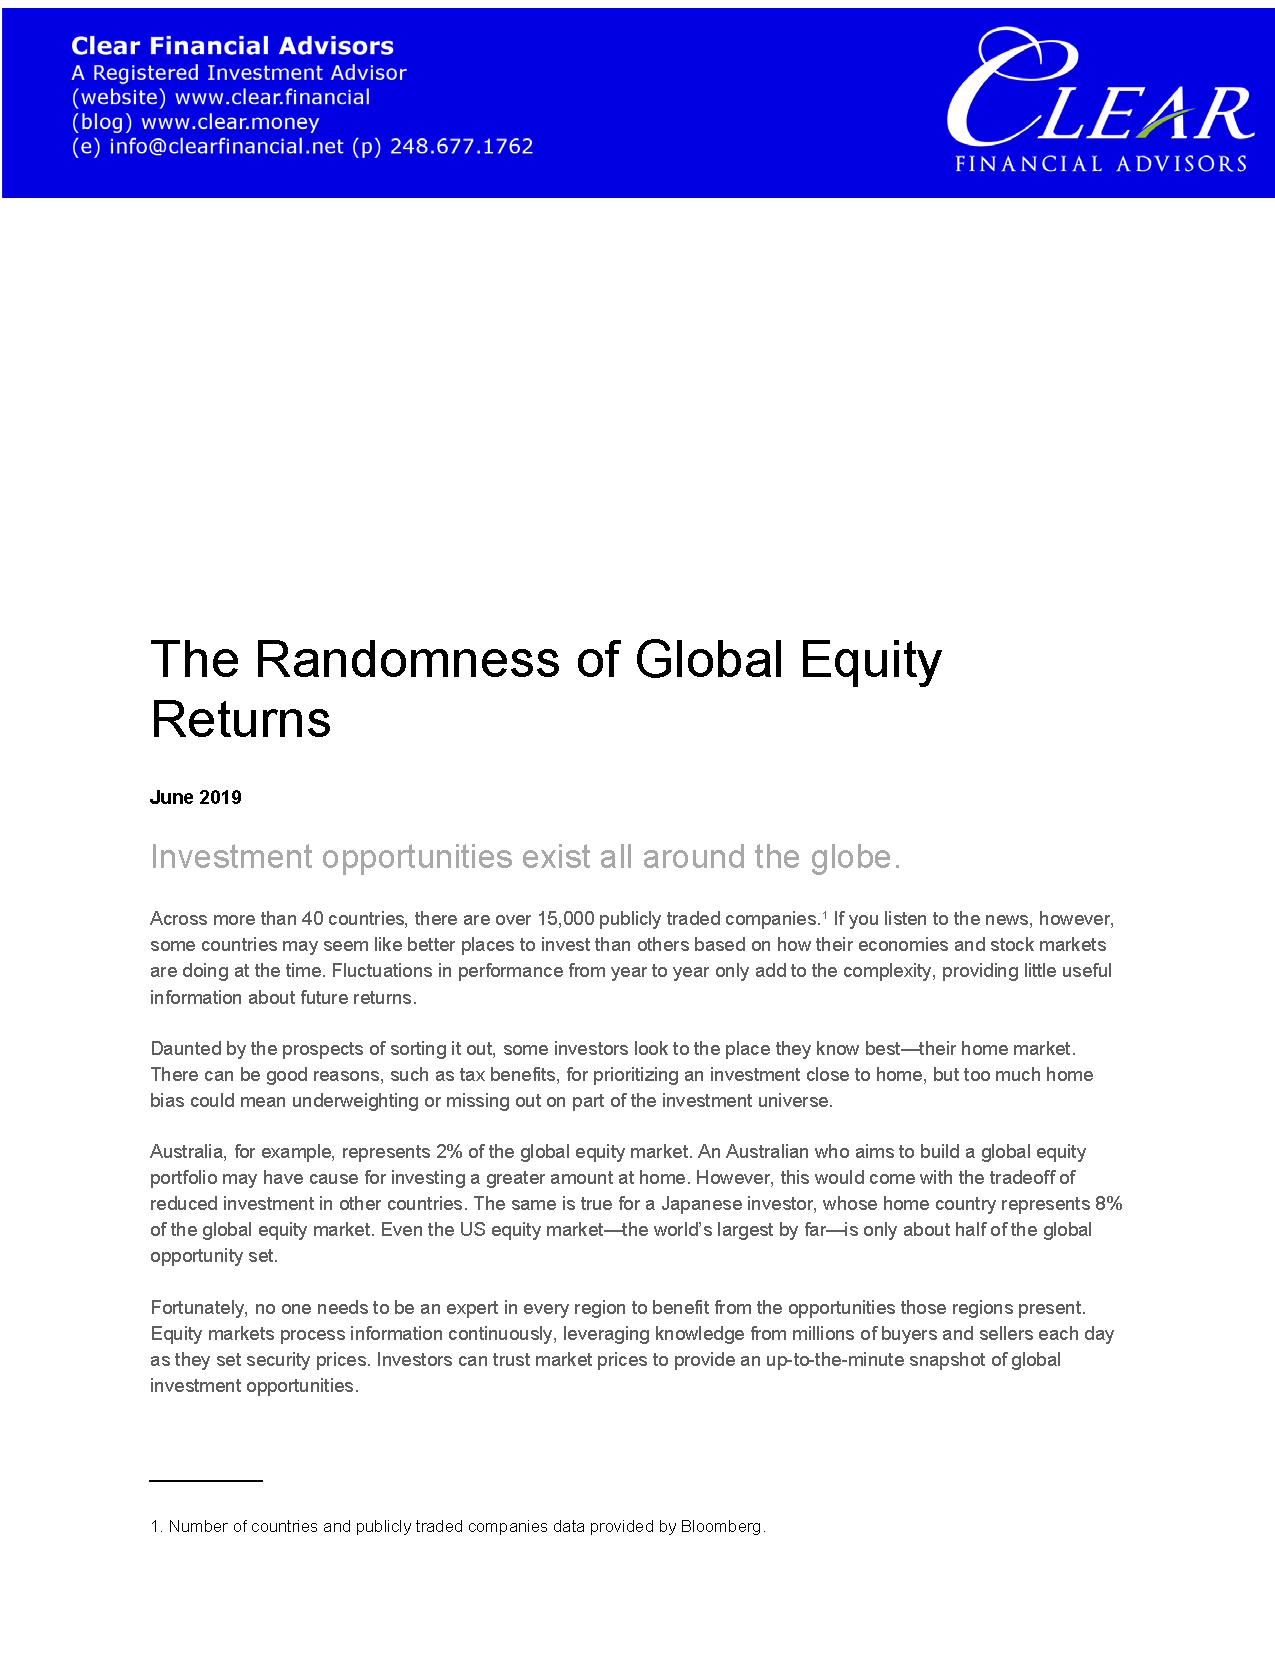 201906 The Randomness of Global Equity R